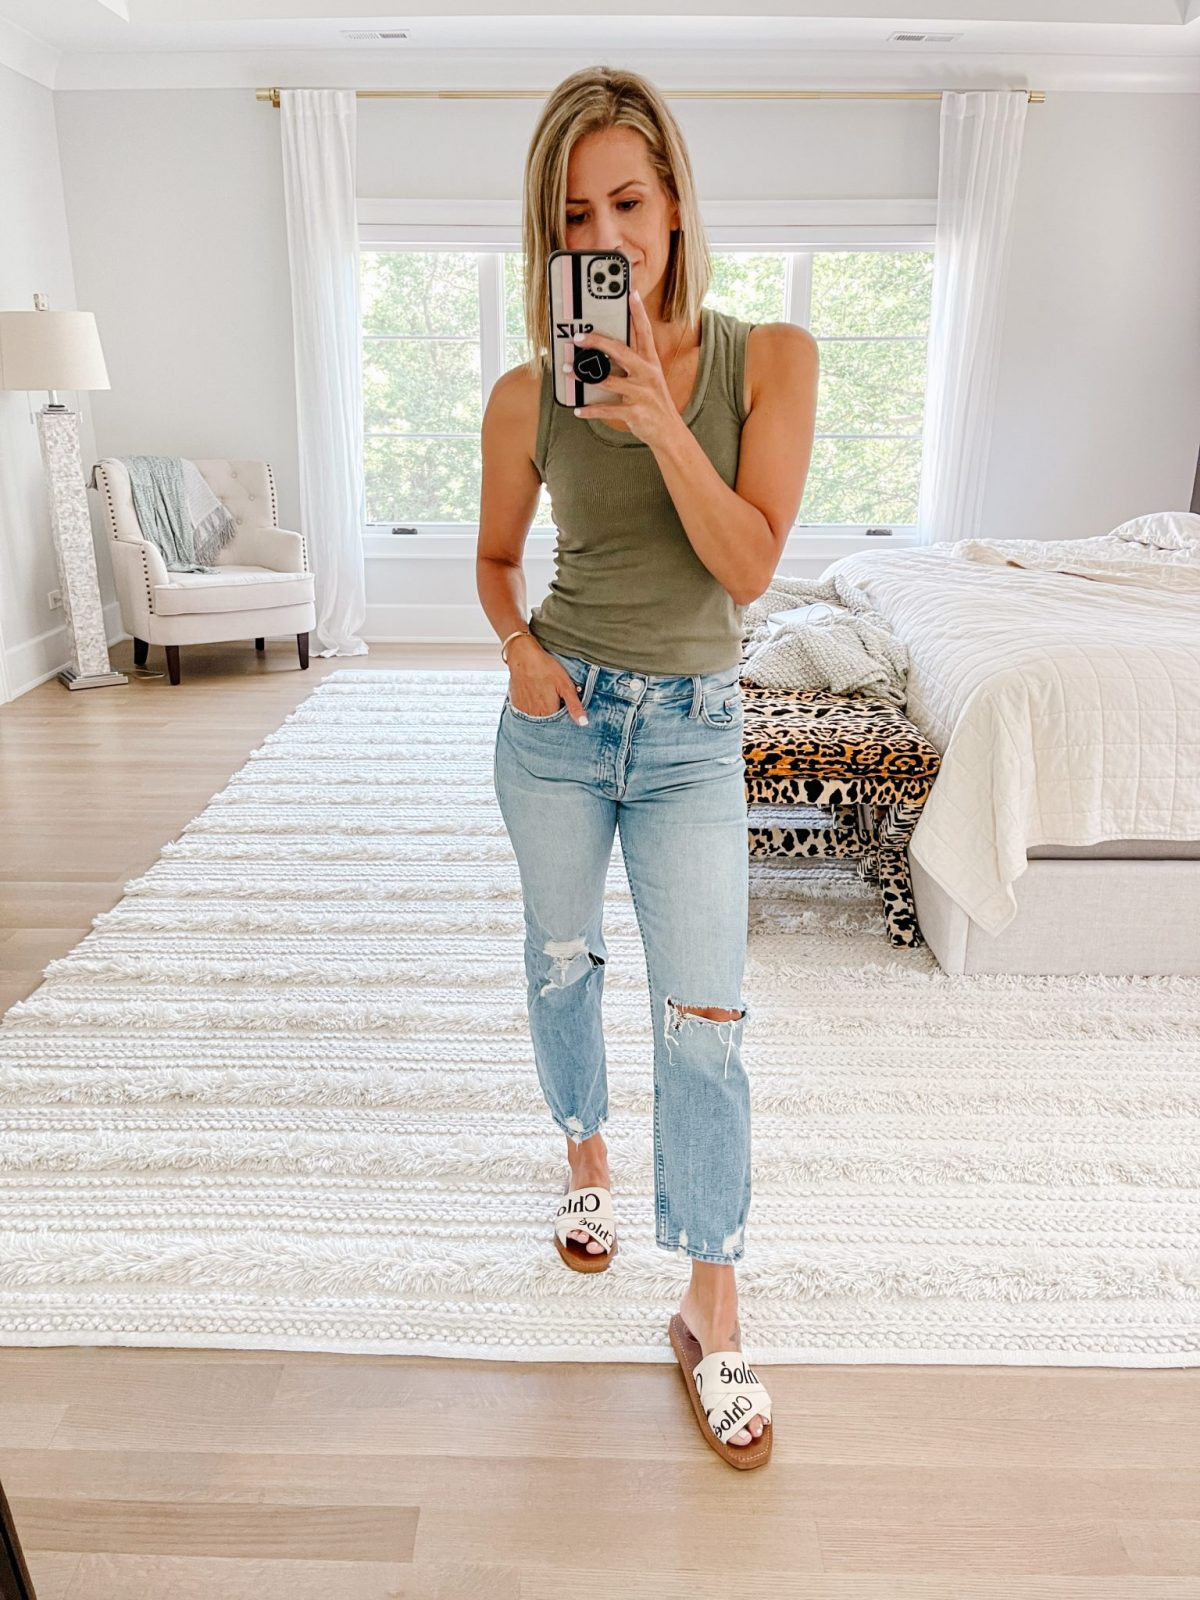 August #ootd round up: Free People tank and denim